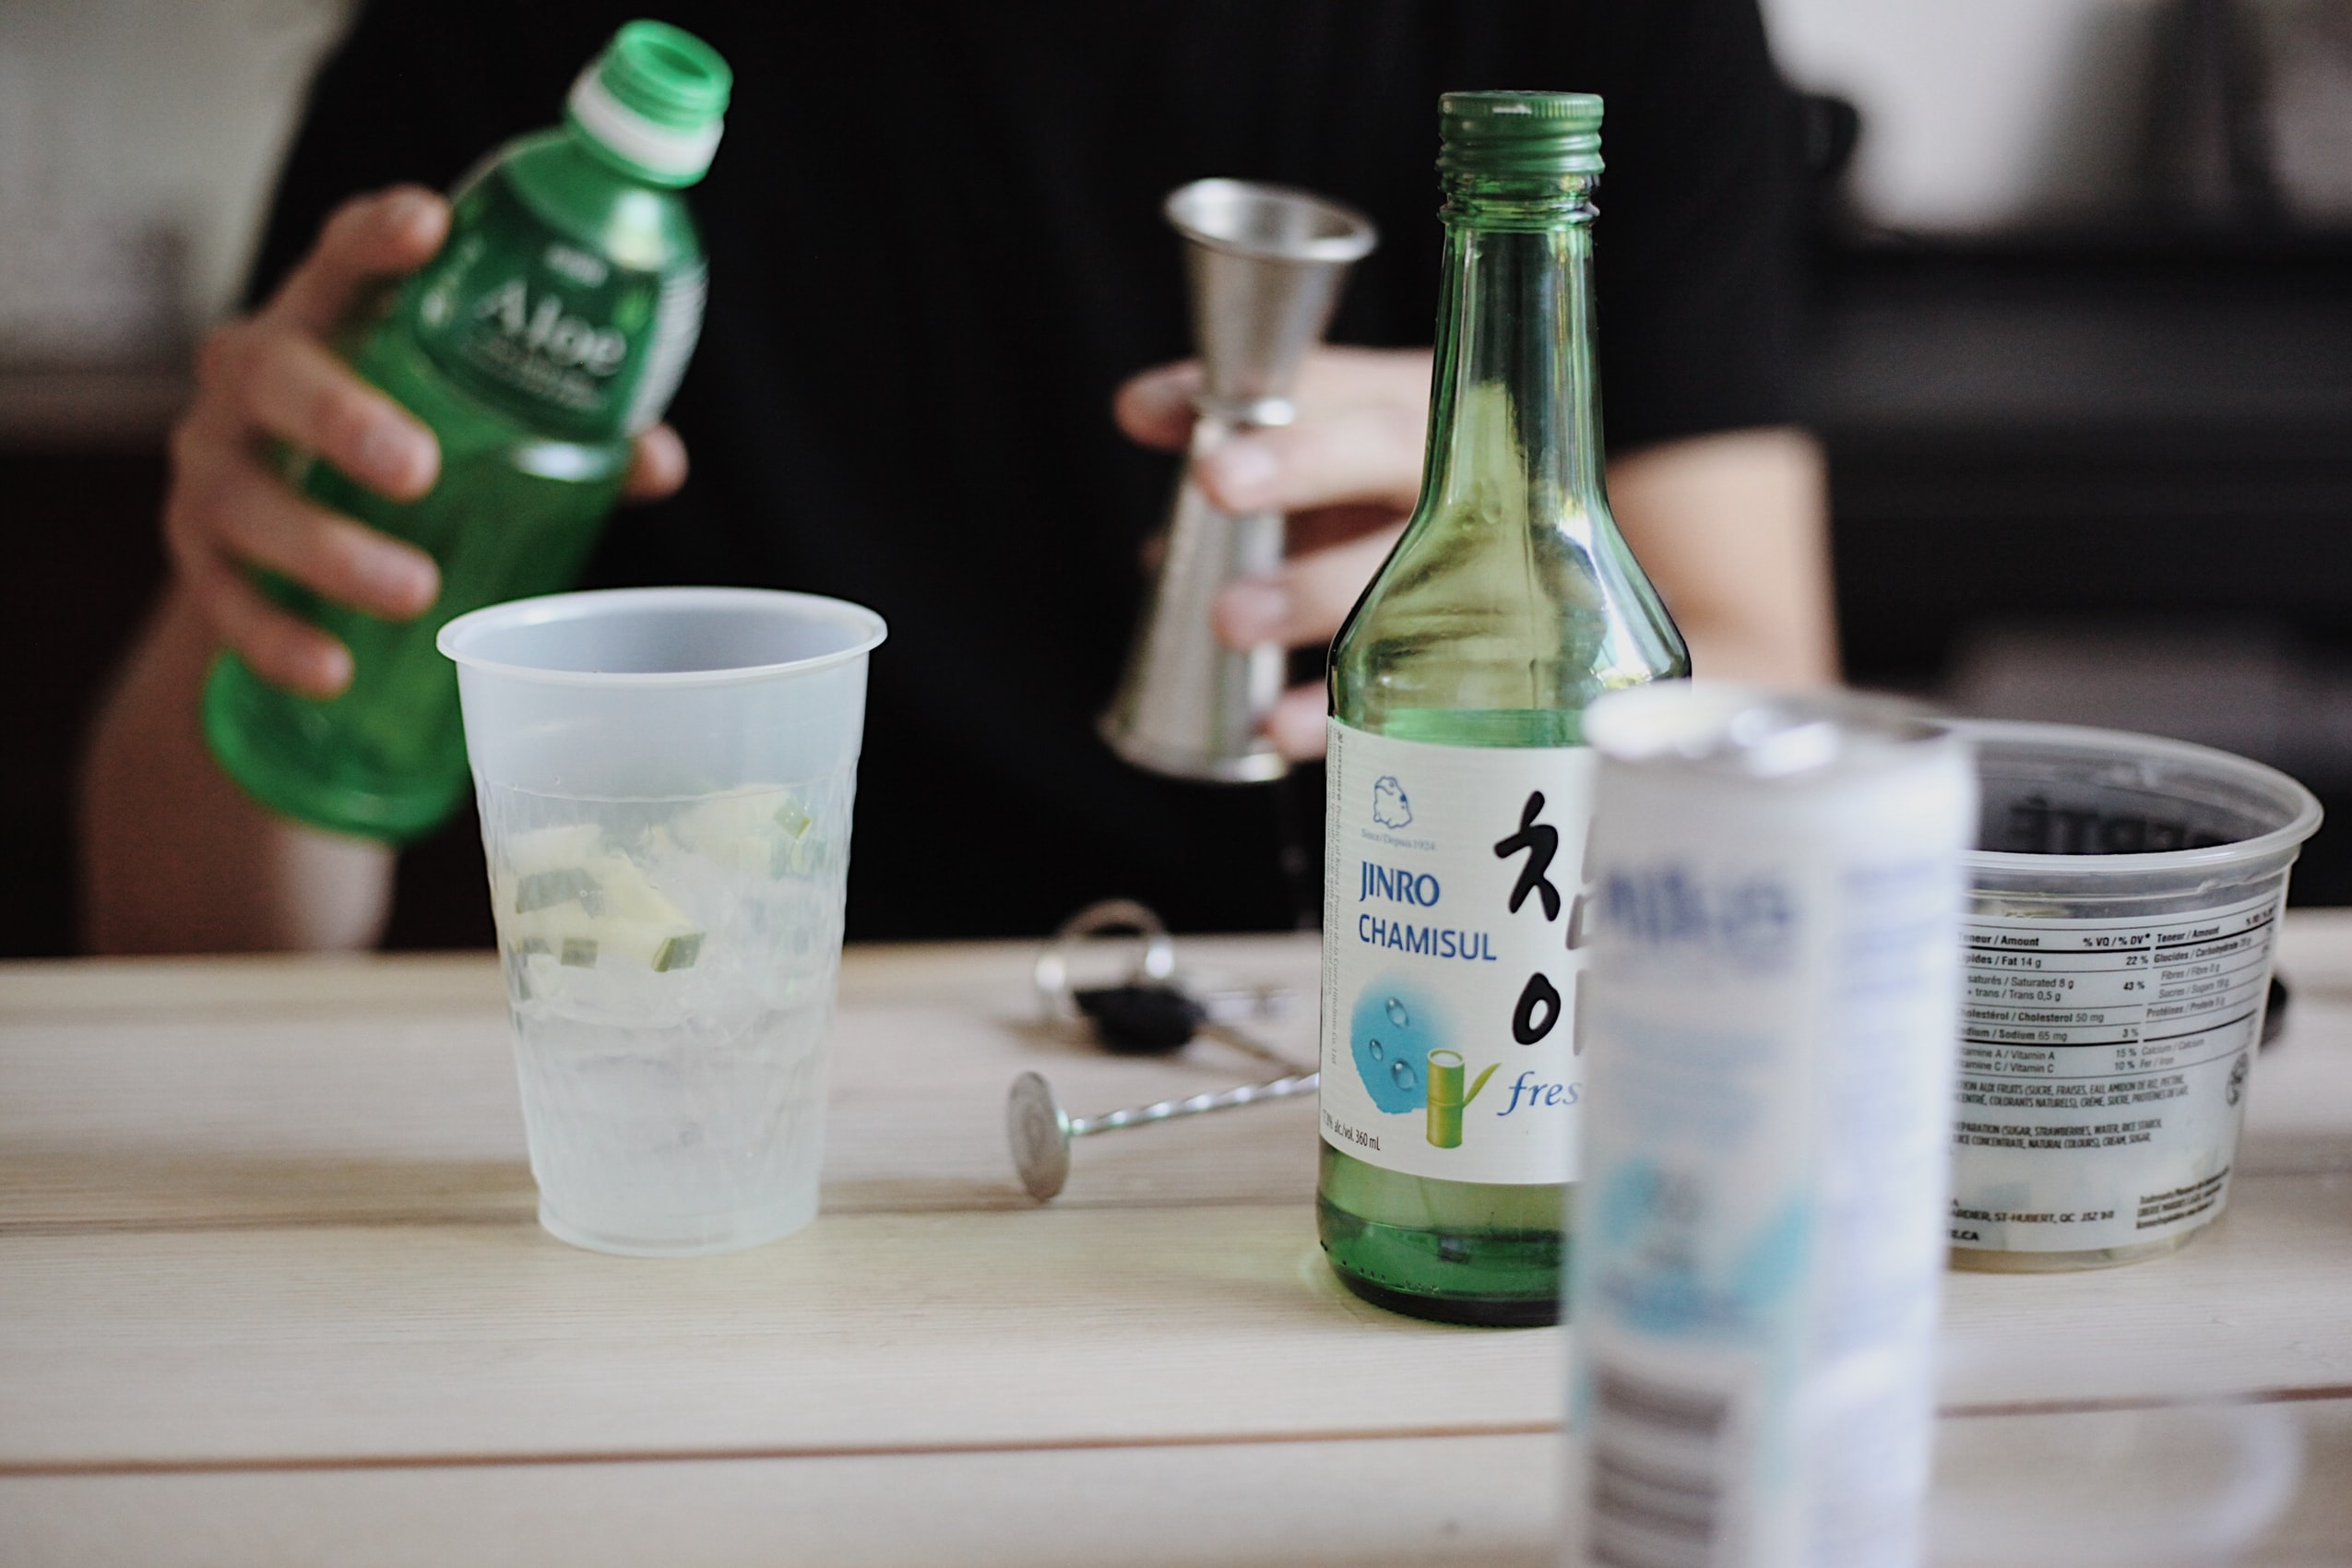 Korean person pouring soju